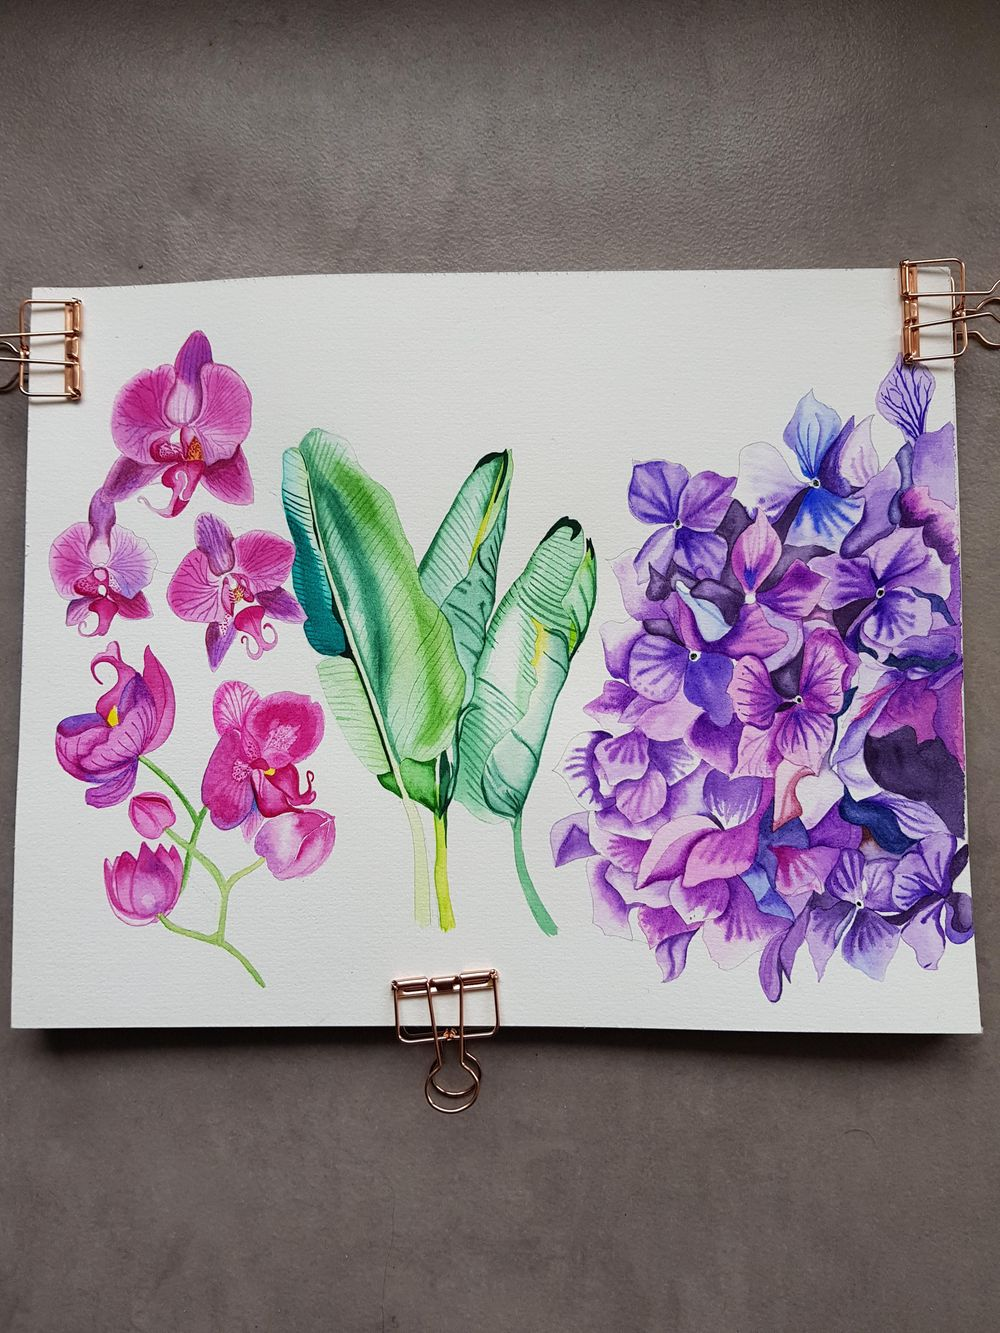 Watercolor Hydrangea - image 2 - student project